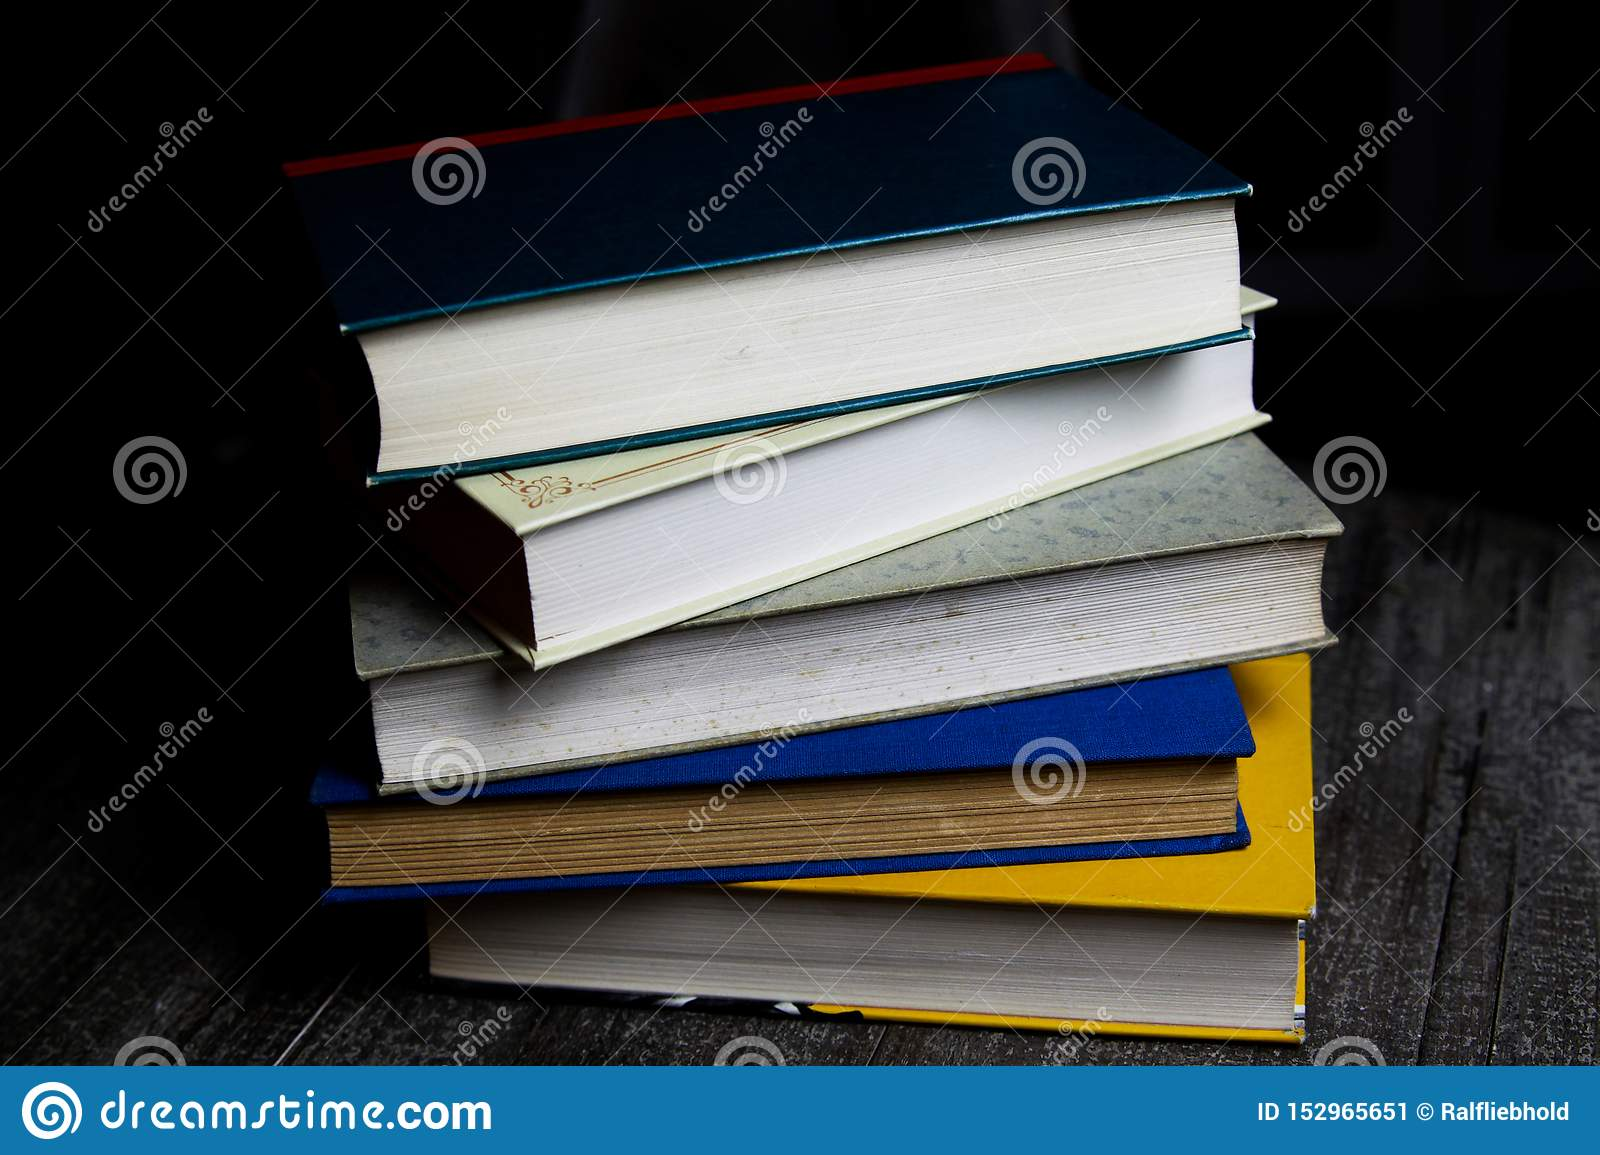 Stack of old books on round wood table with reading light during night